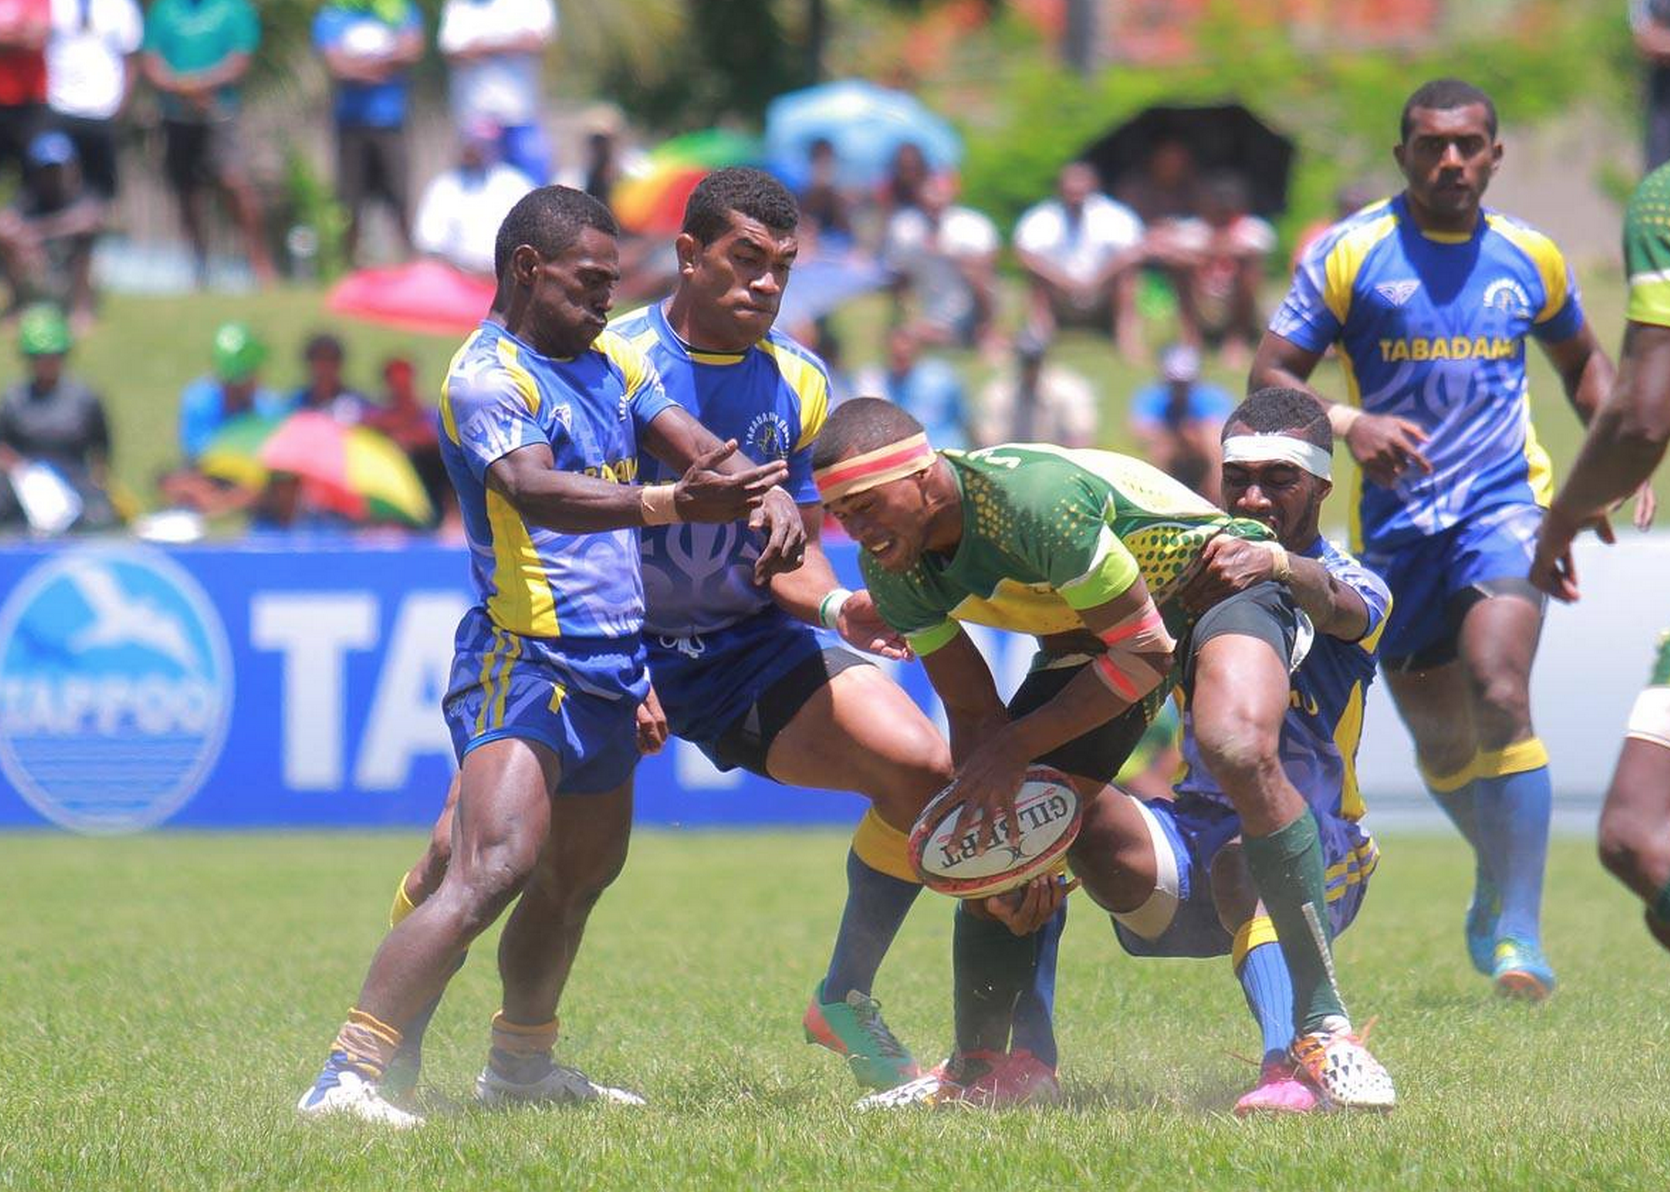 Fiji Coral Coast Sevens tournament matches will be played at Lawaqa Park, Coral Coast